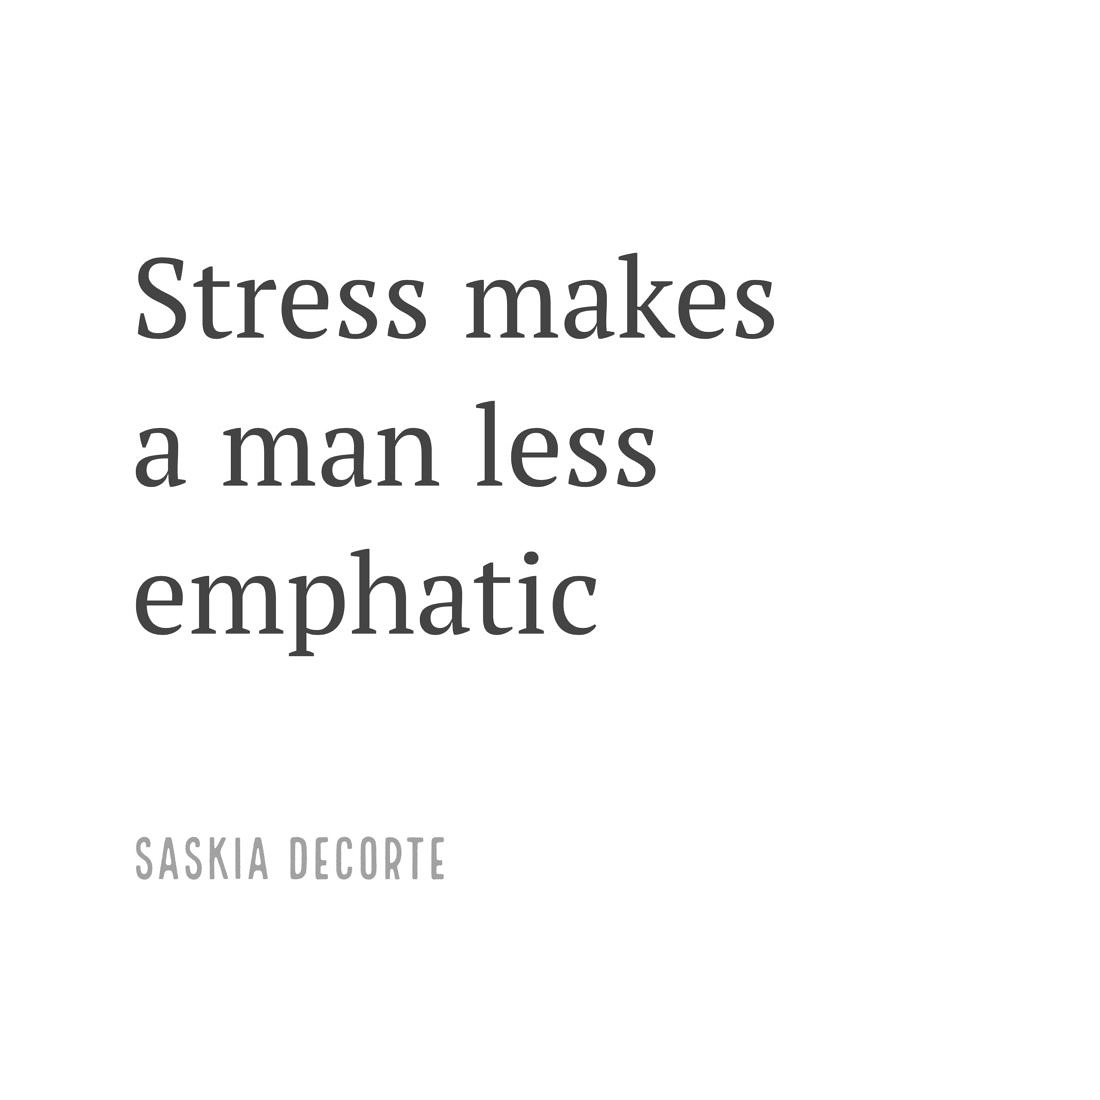 stress makes a man less emphatic